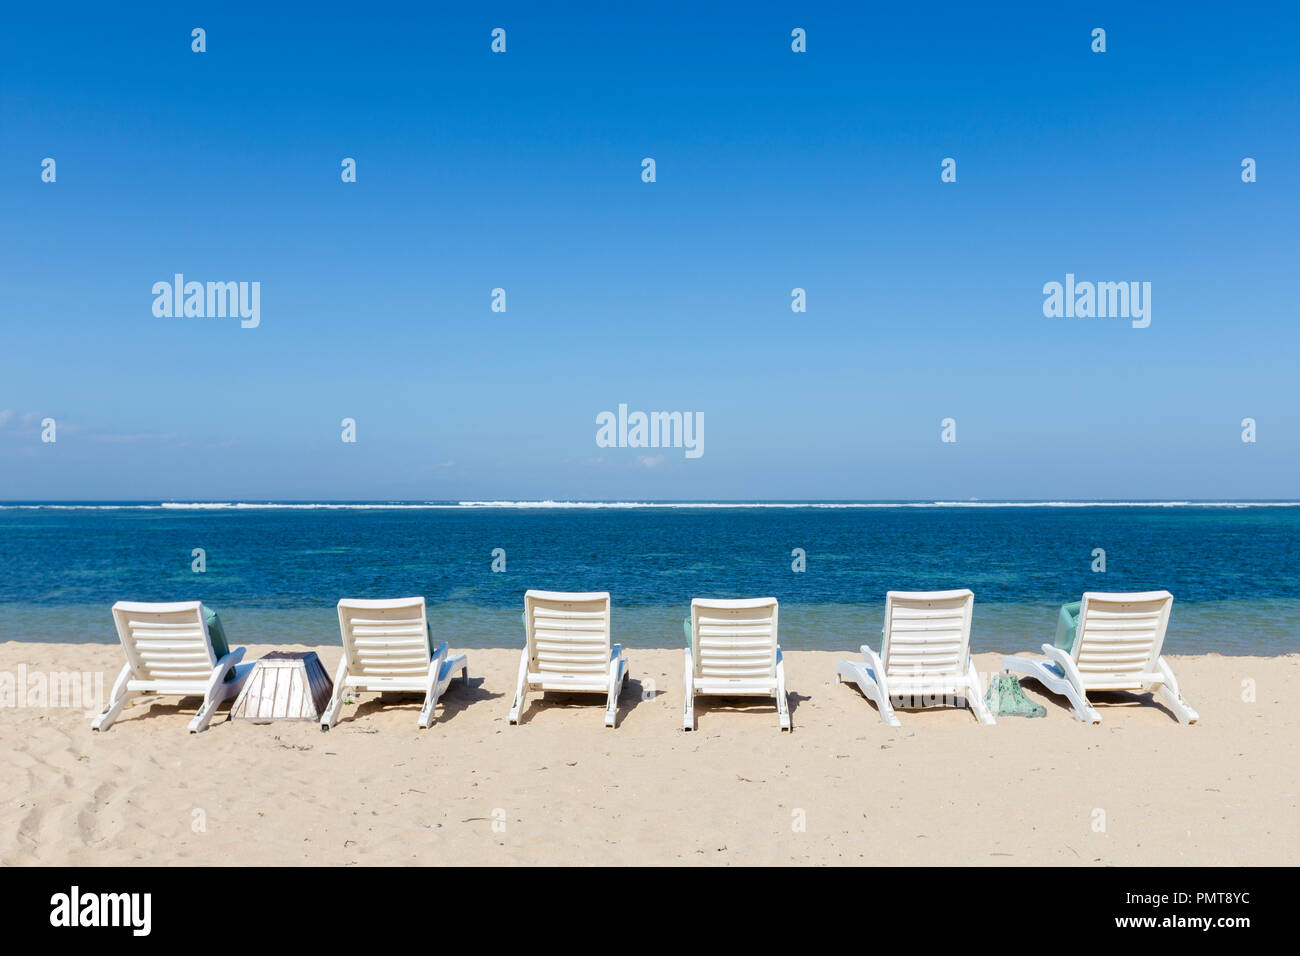 Lounge chairs  on the beach, Sanur, Bali, Indonesia - Stock Image